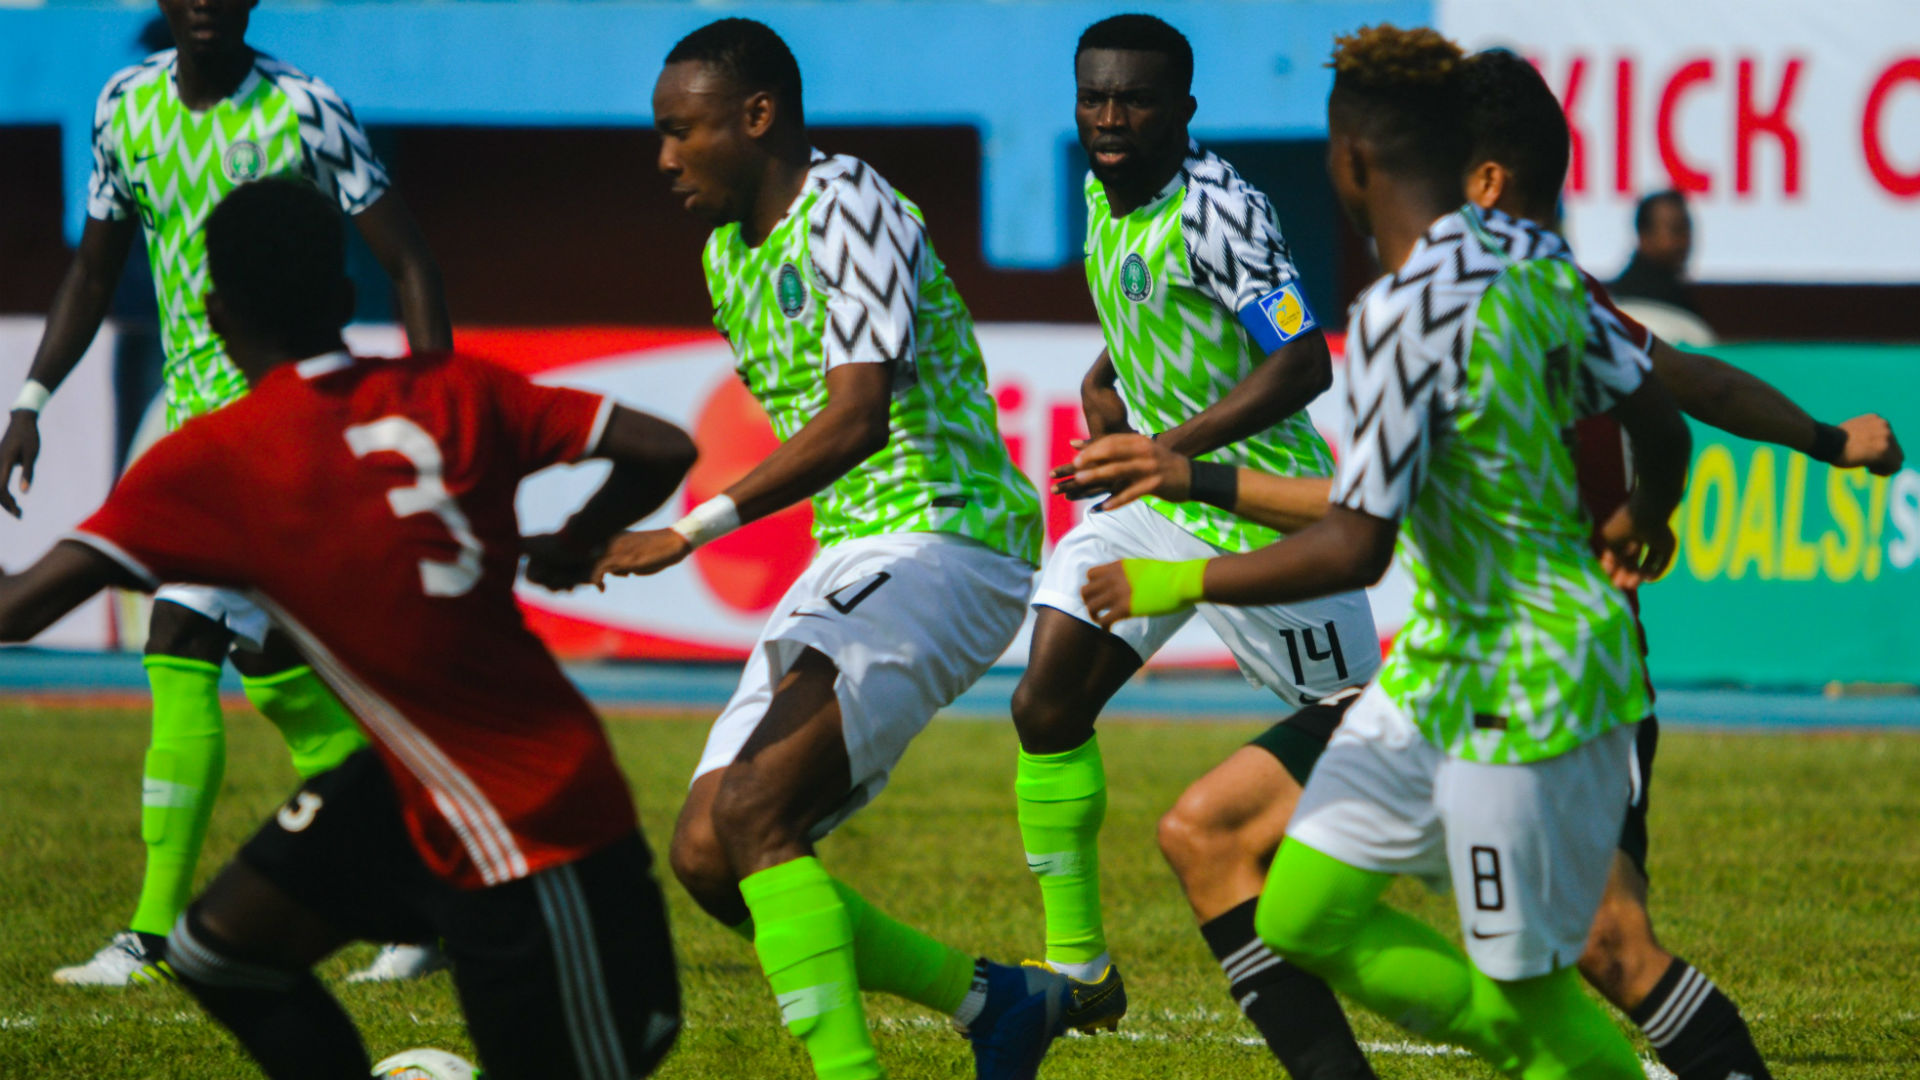 U23 Afcon: When are Nigeria playing against Zambia and how can I watch?